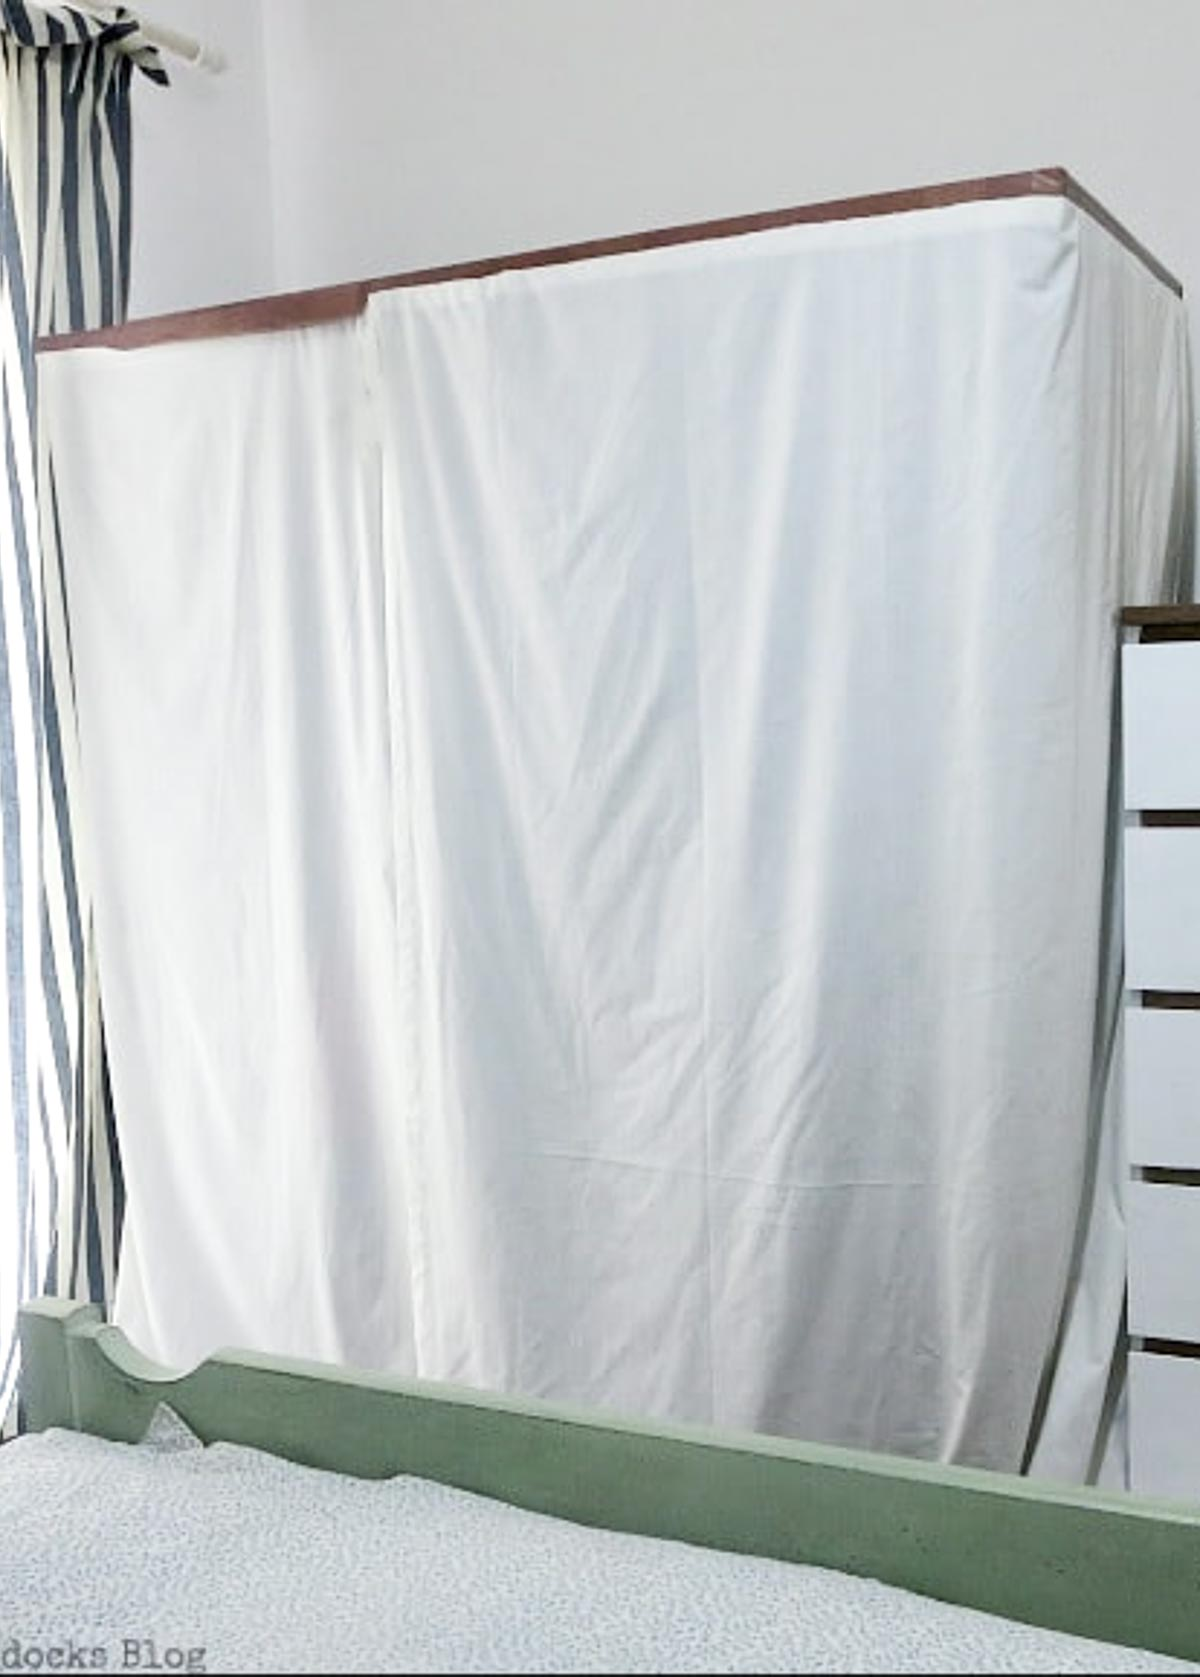 Clothes rack cover and dresser.